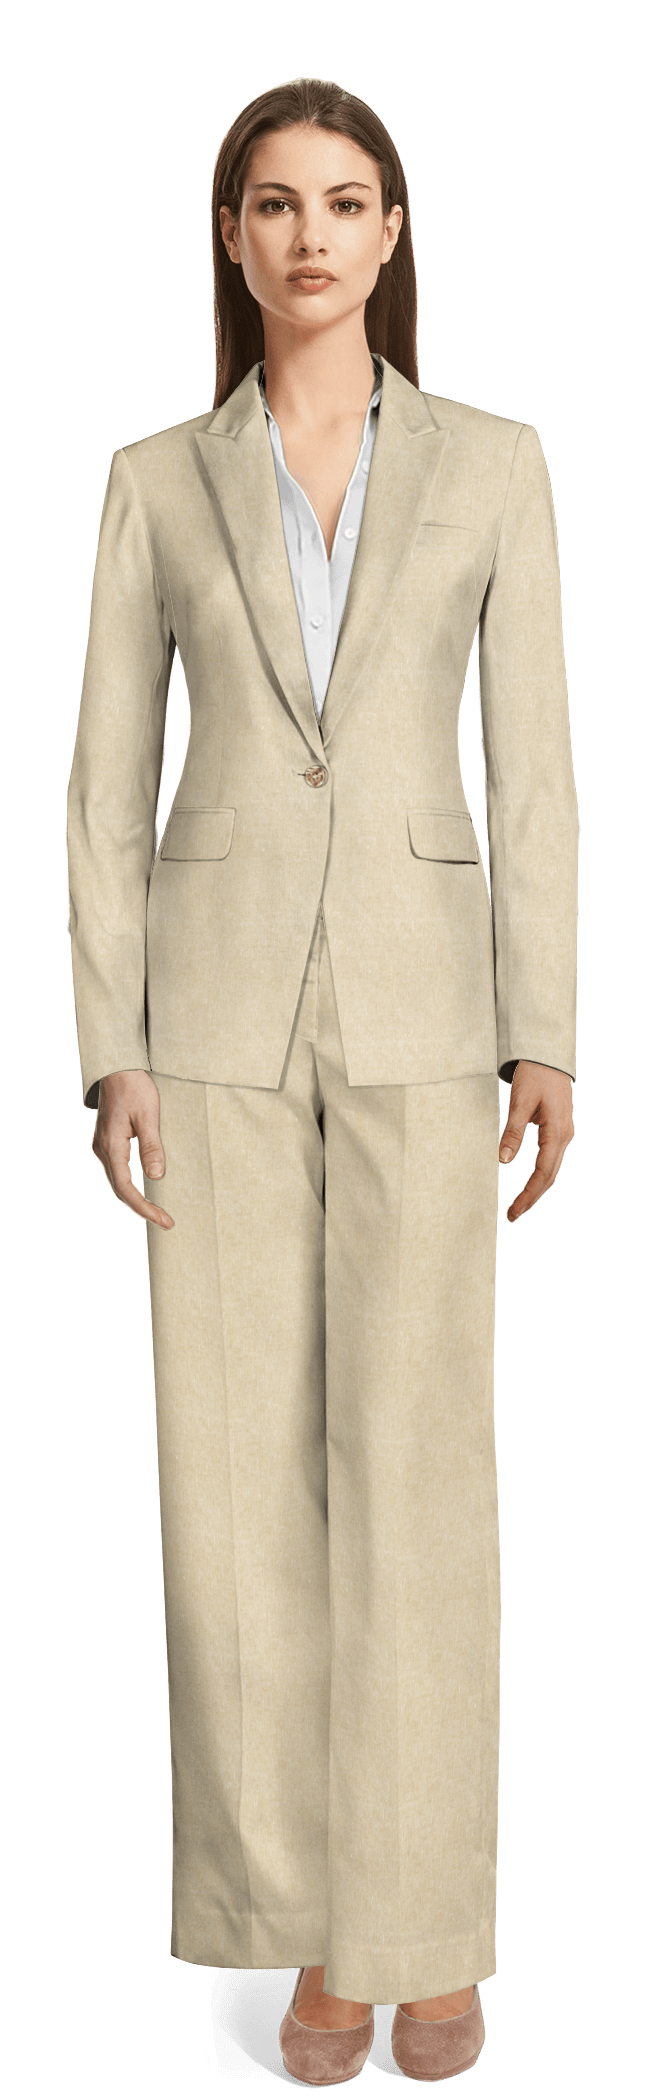 Women S Linen Suits Made To Measure Sumissura